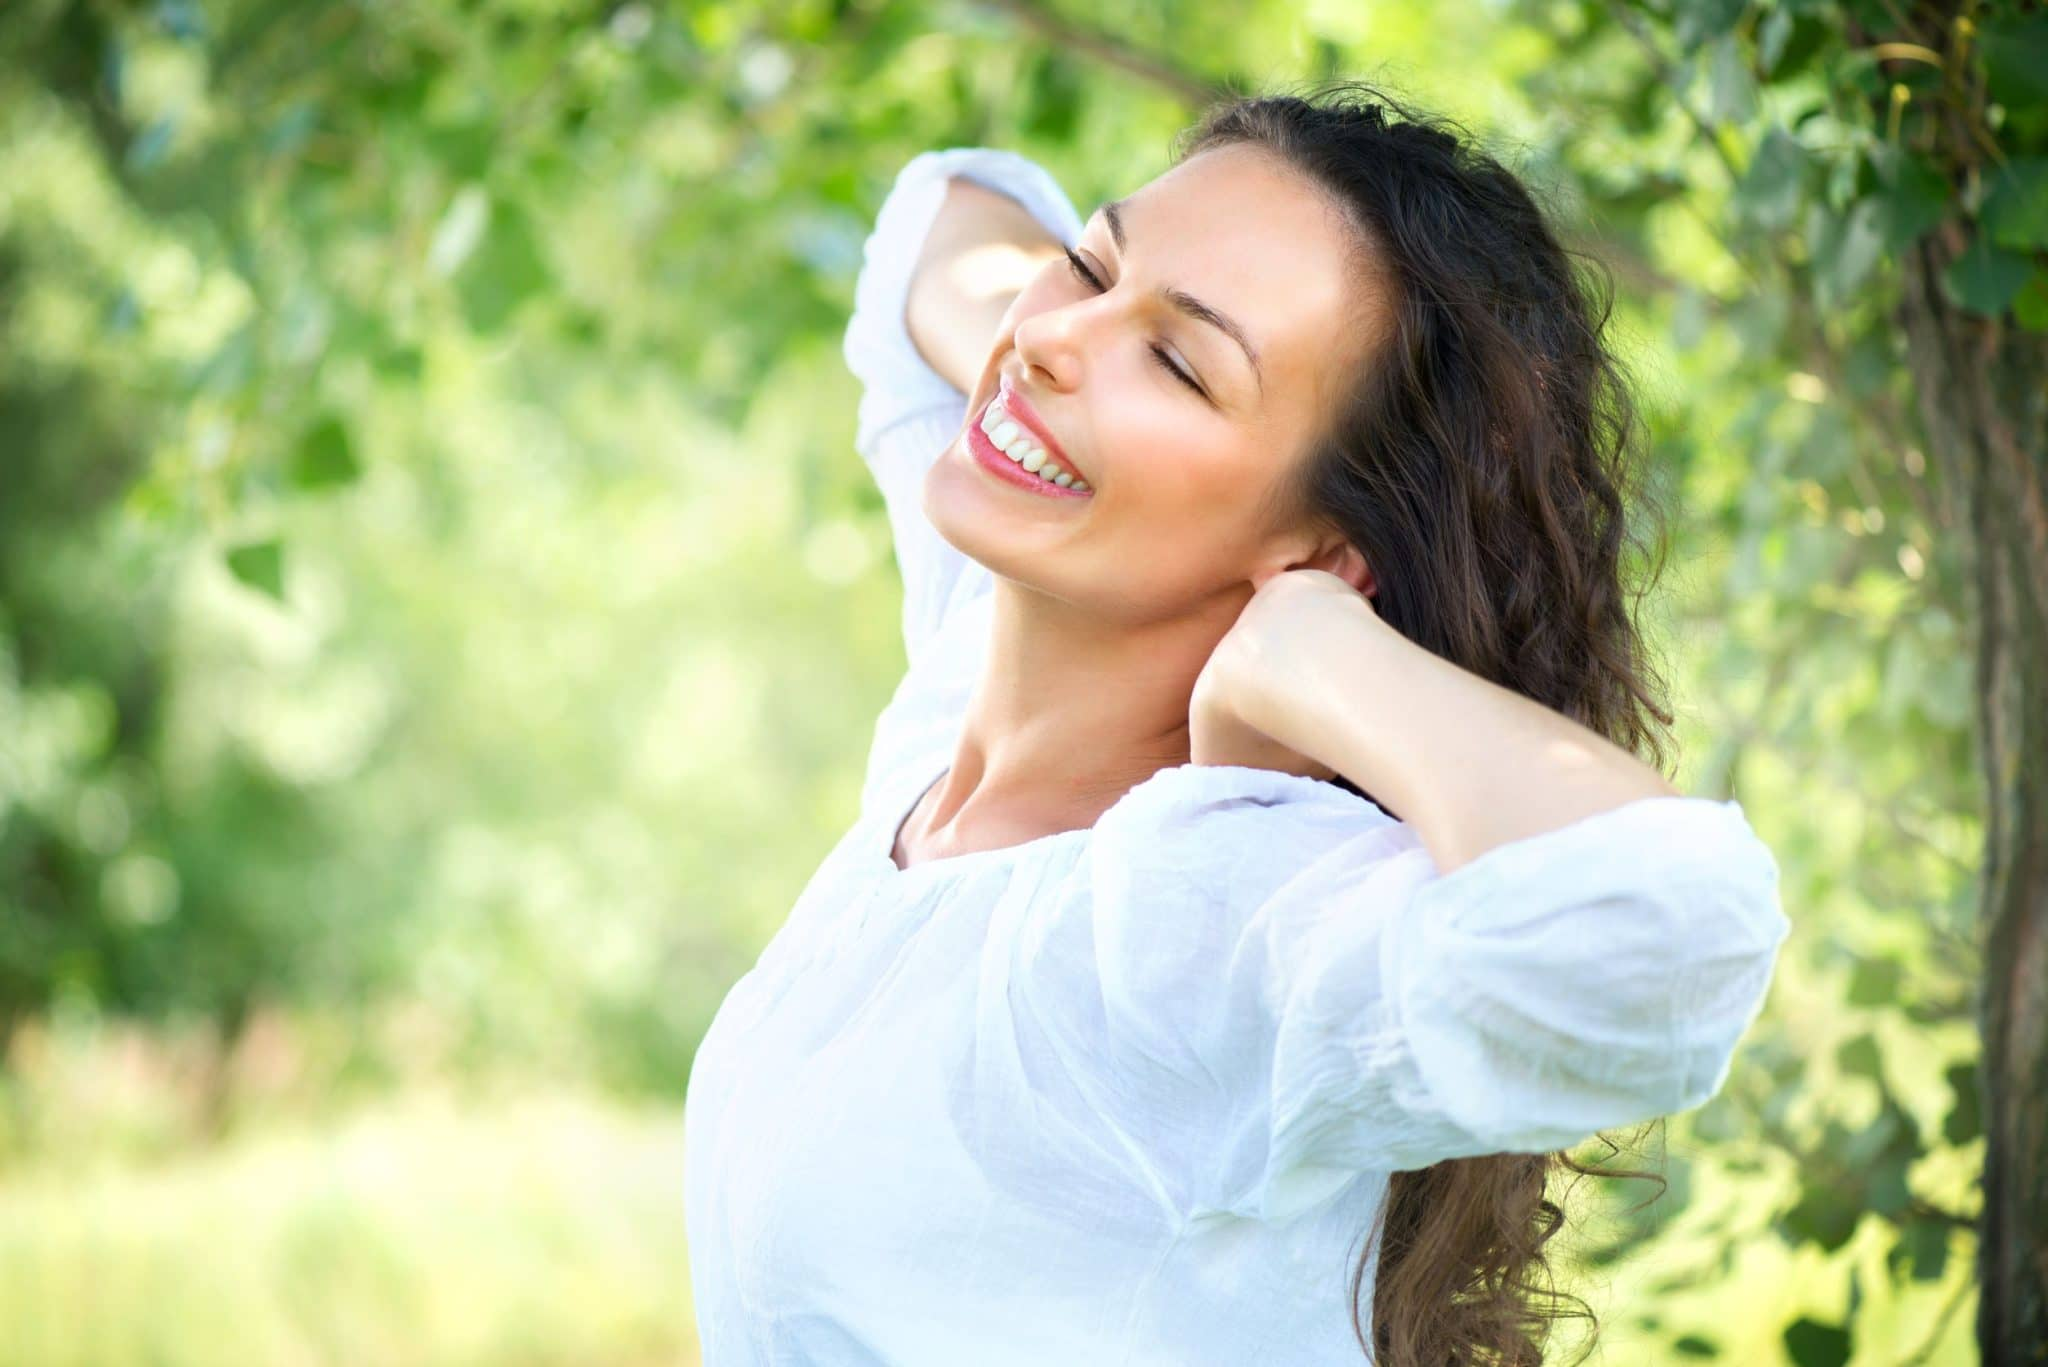 Woman Feeling Great from IV Vitamin Therapy Benefits While Smiling and Stretching Outdoors